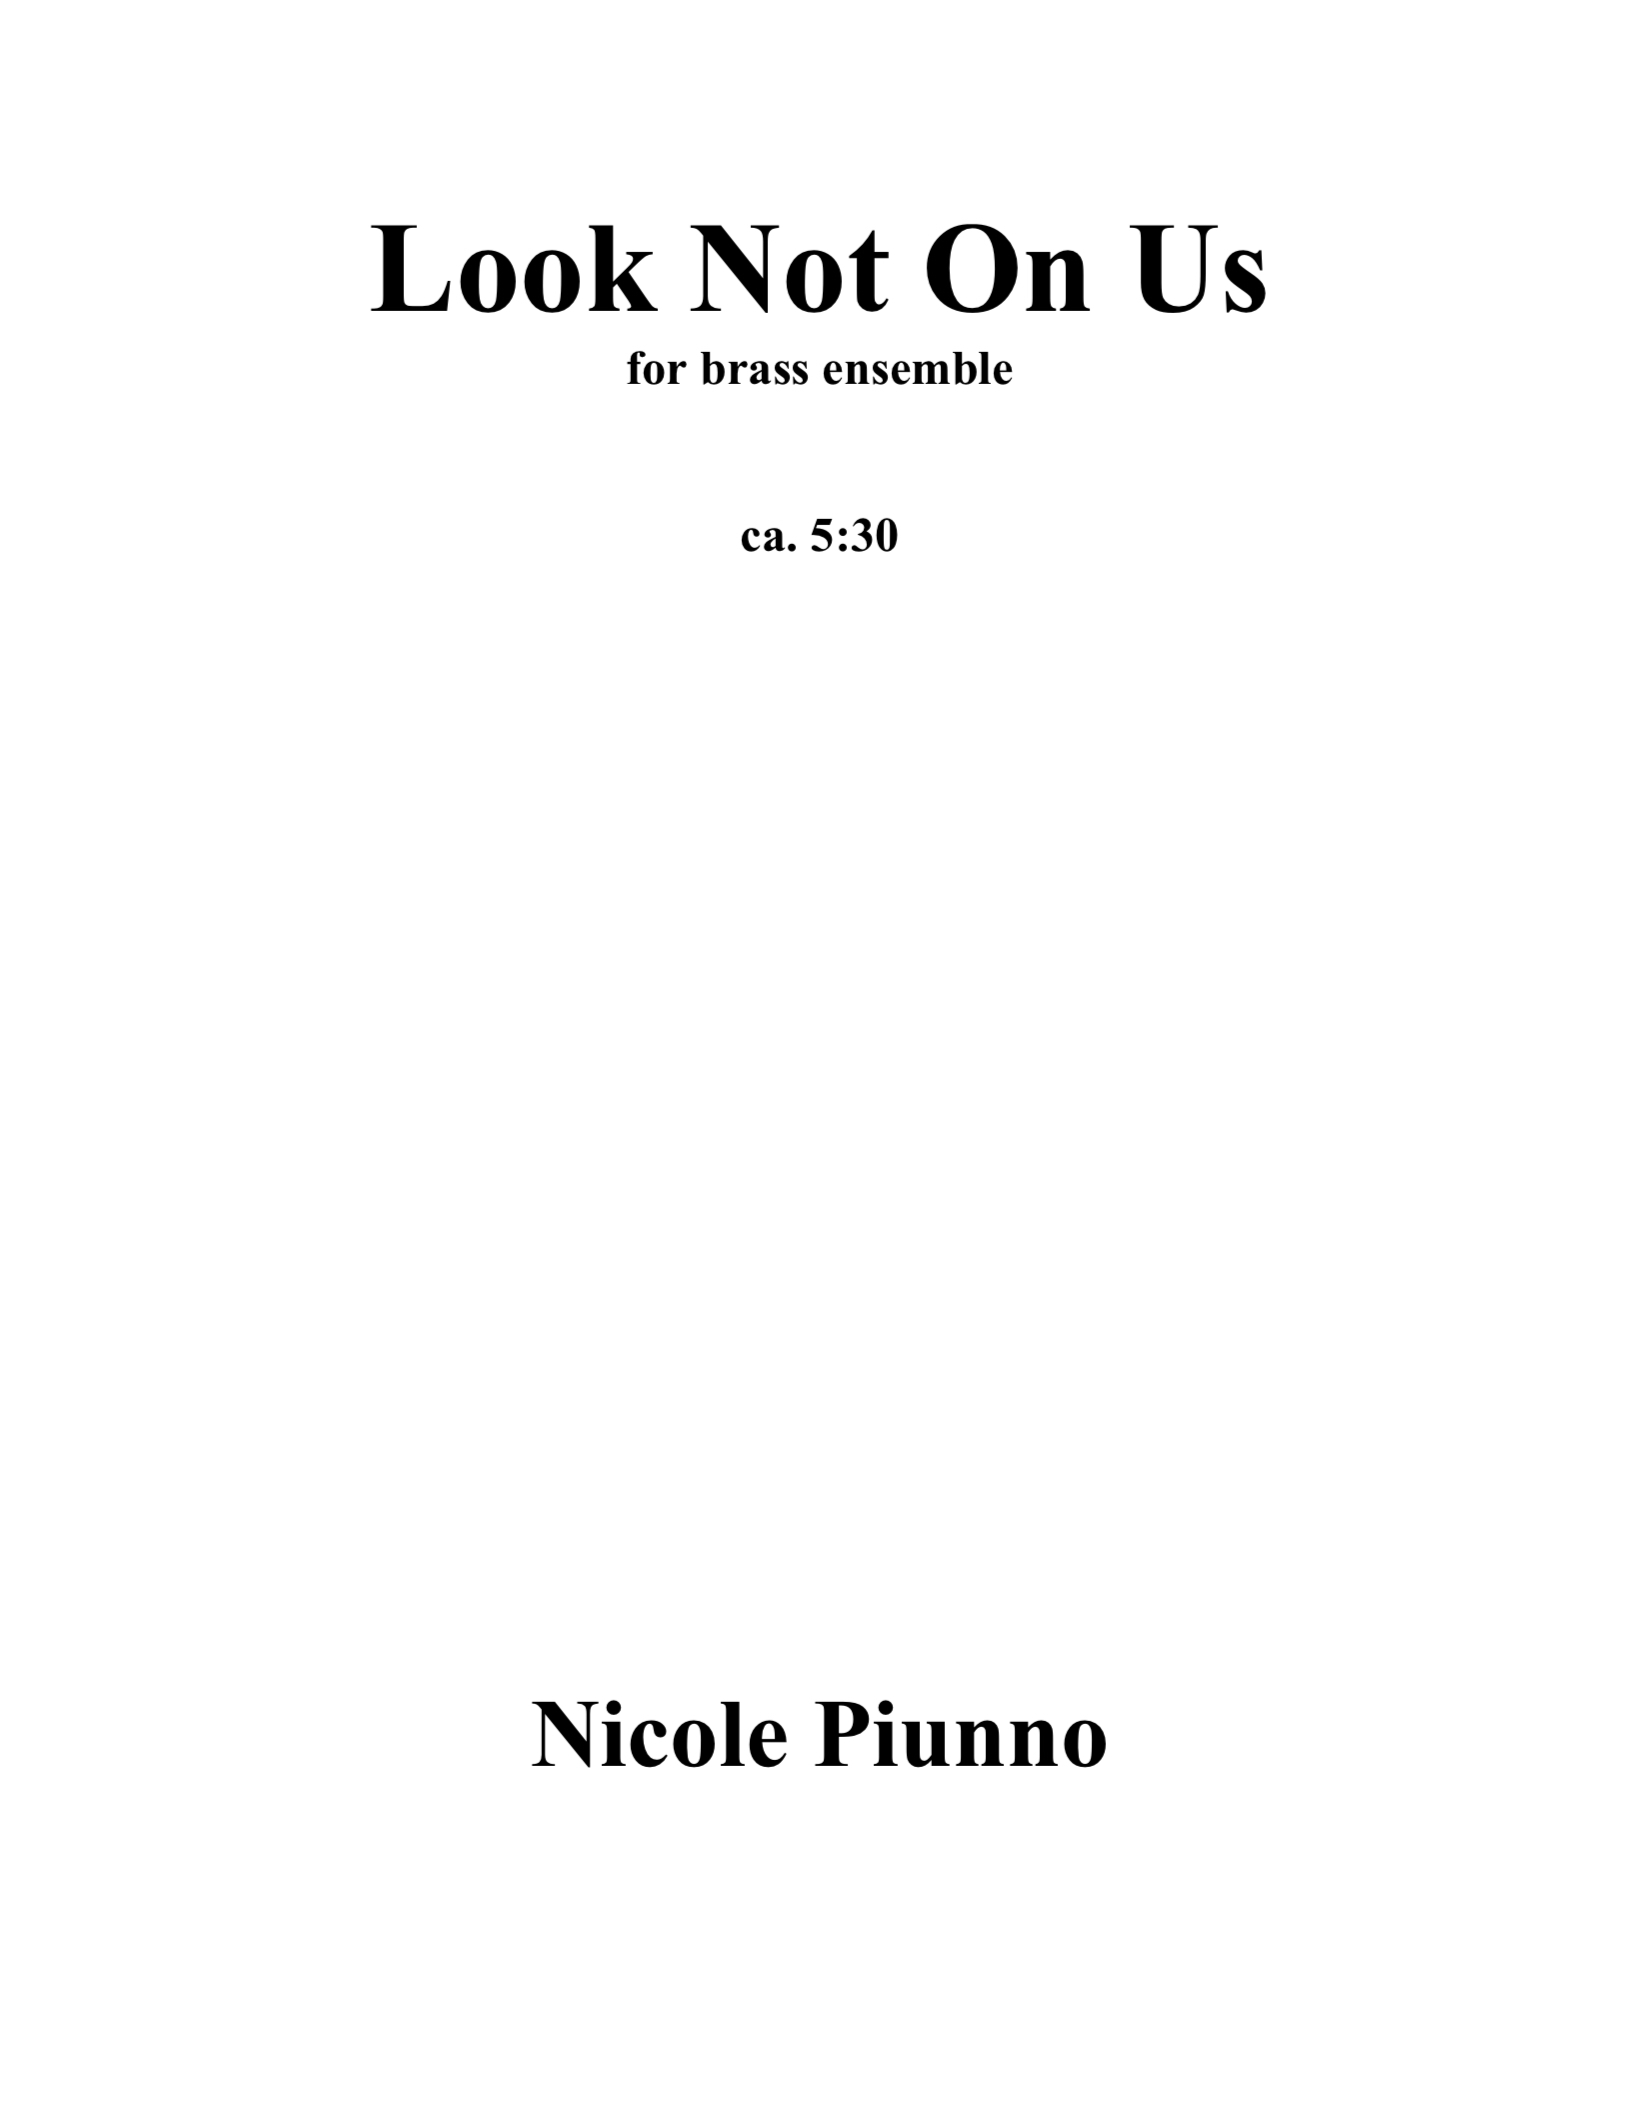 Look Not On Us by Nicole Piunno